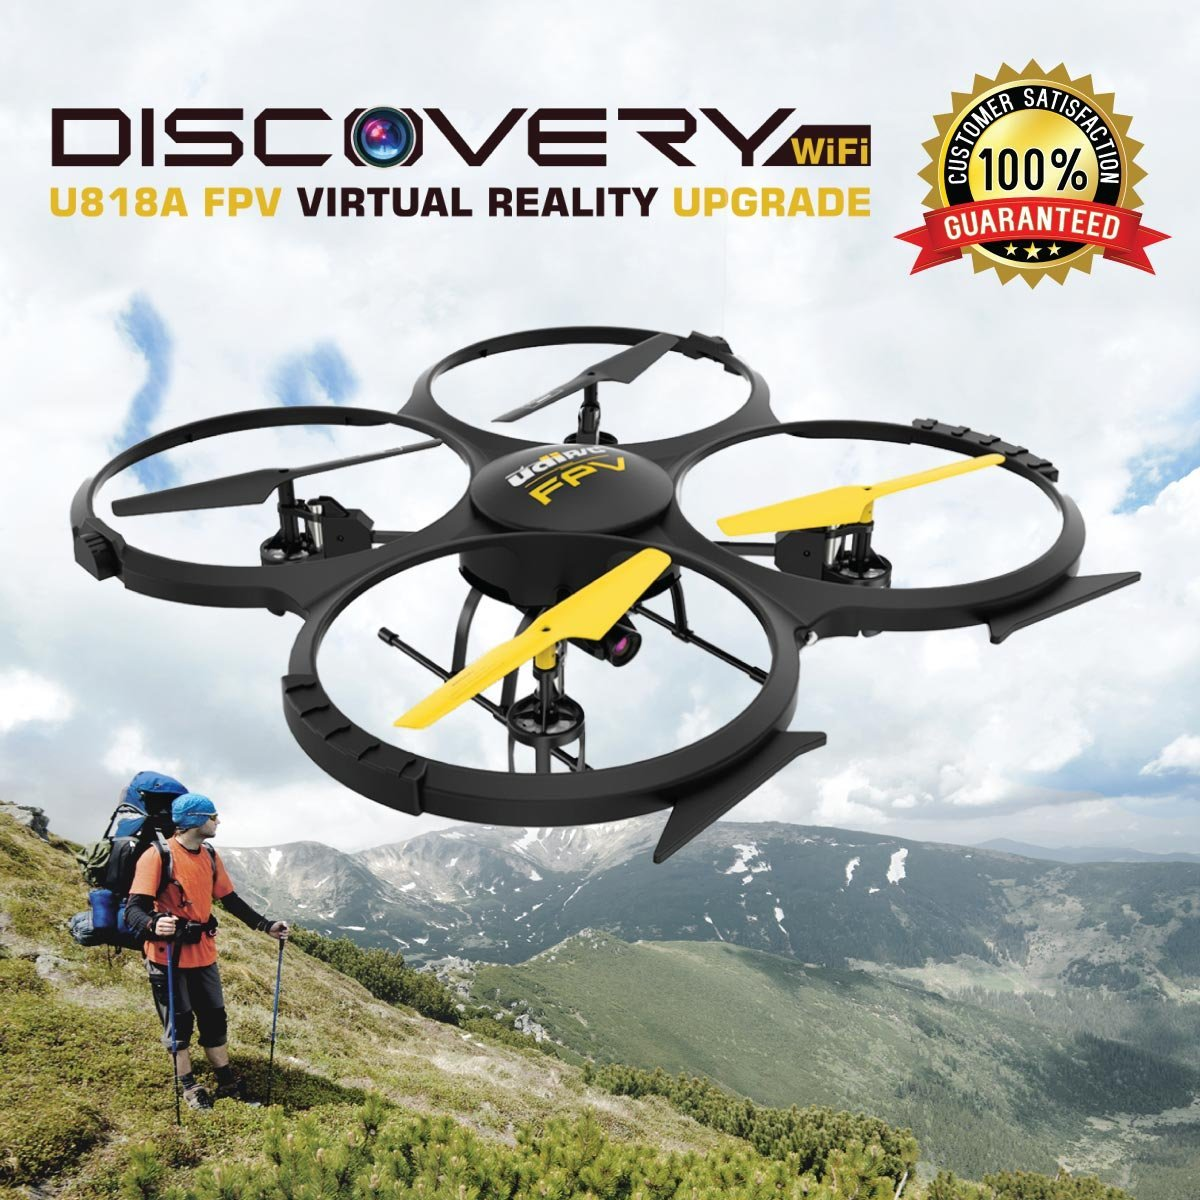 U818A Wifi FPV Drone with Altitude Hold, HD Camera Live Video, Remote Control and VR Headset, Power Bank.